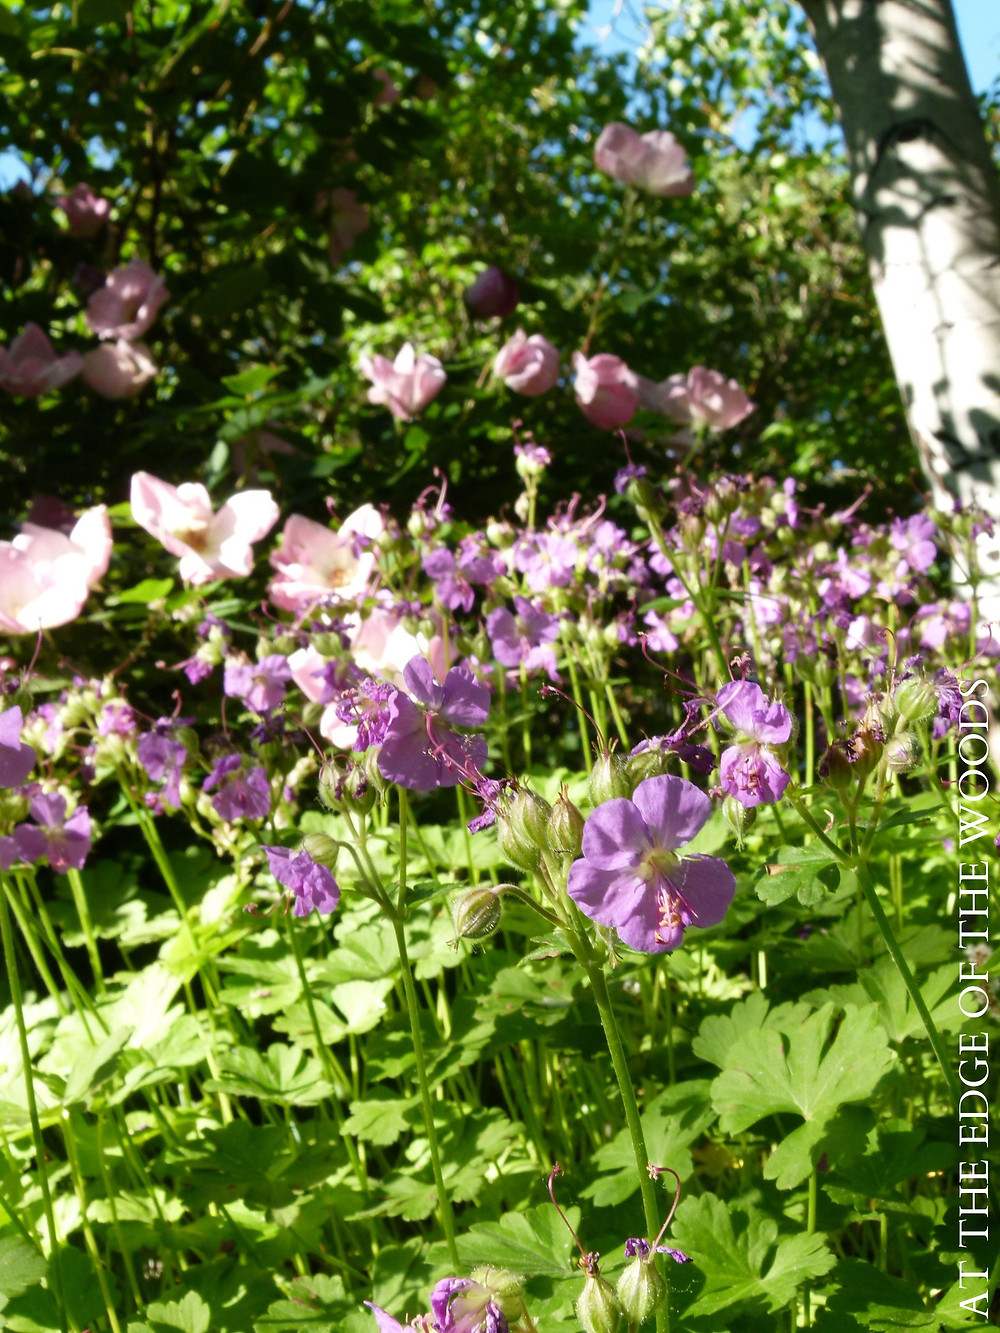 lavender geraniums bloom in the foreground with rainbow roses behind